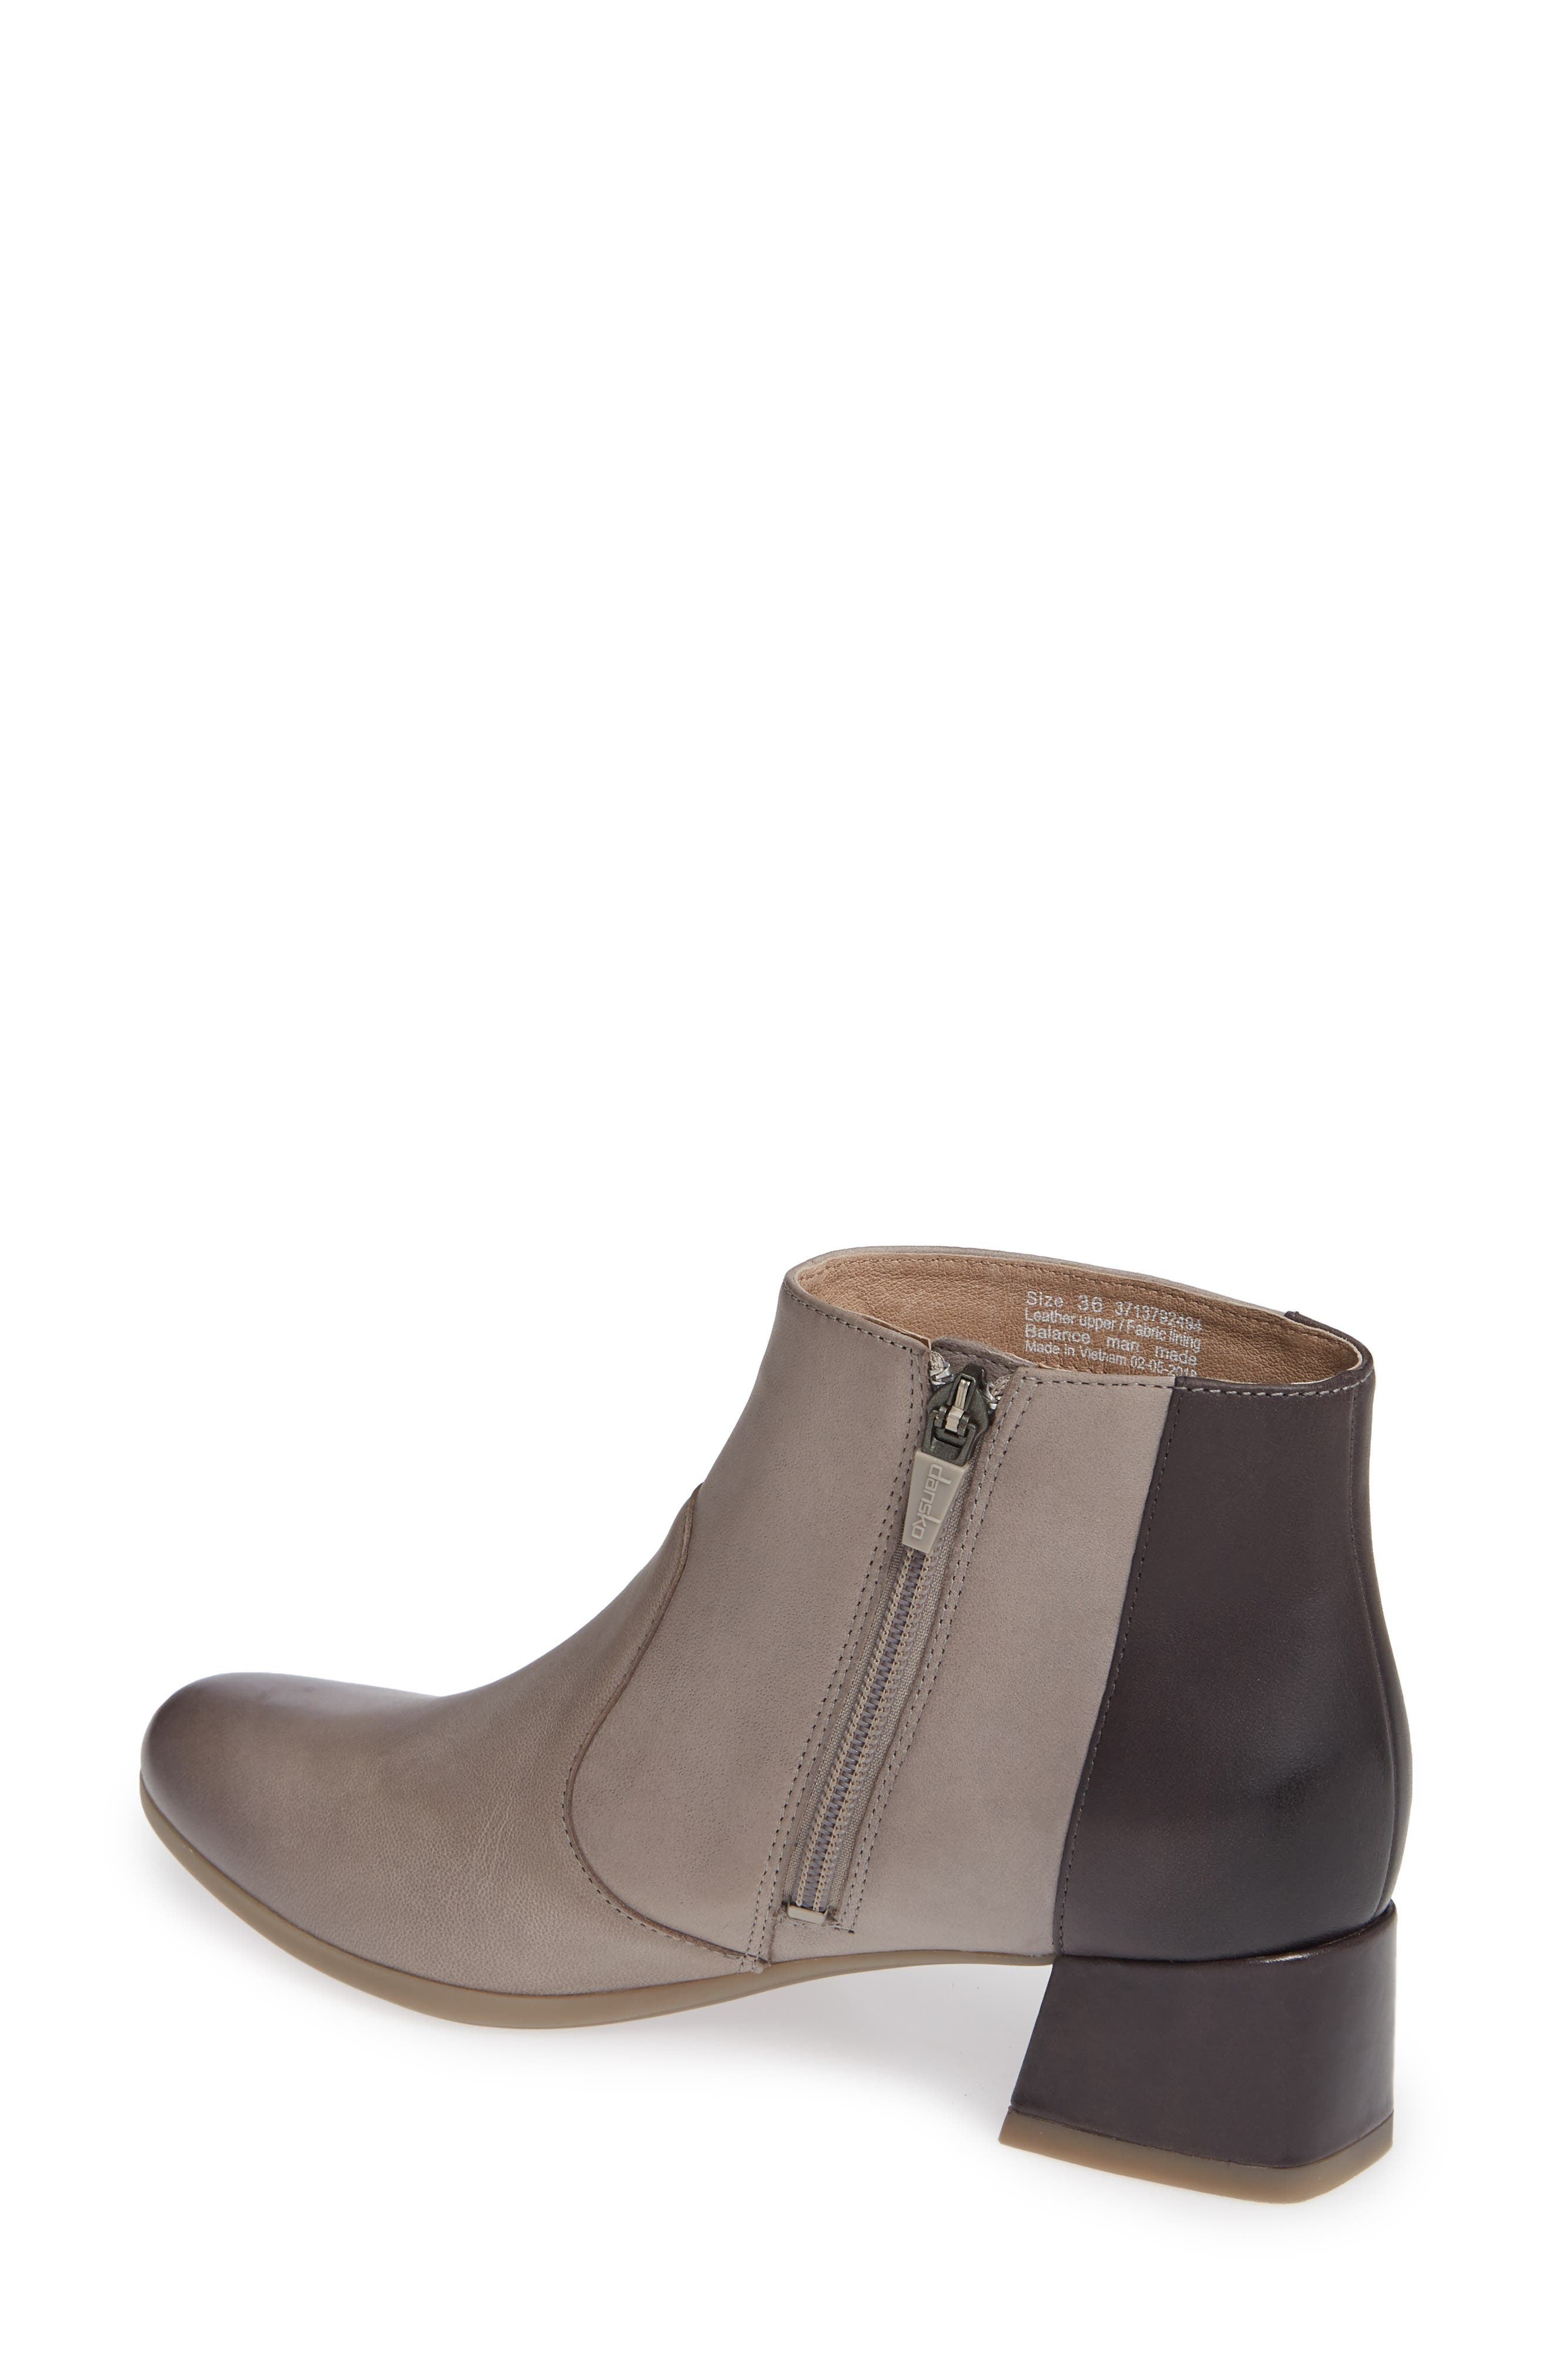 Petra Bootie,                             Alternate thumbnail 2, color,                             STONE BURNISHED NUBUCK LEATHER